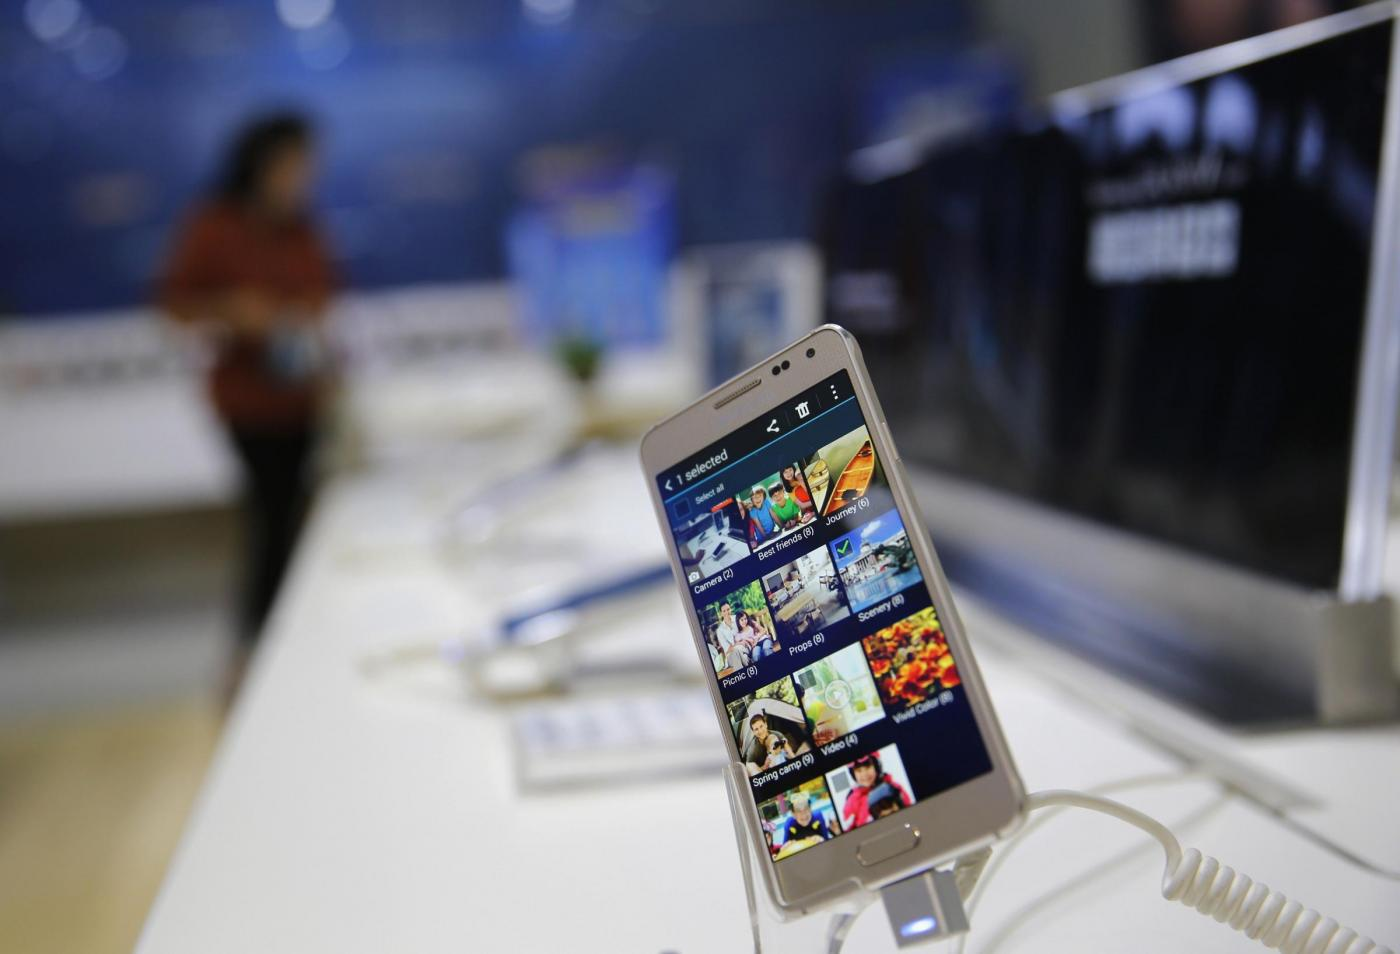 A Samsung Galaxy Alpha smartphone is displayed at a Samsung showroom in Jakarta